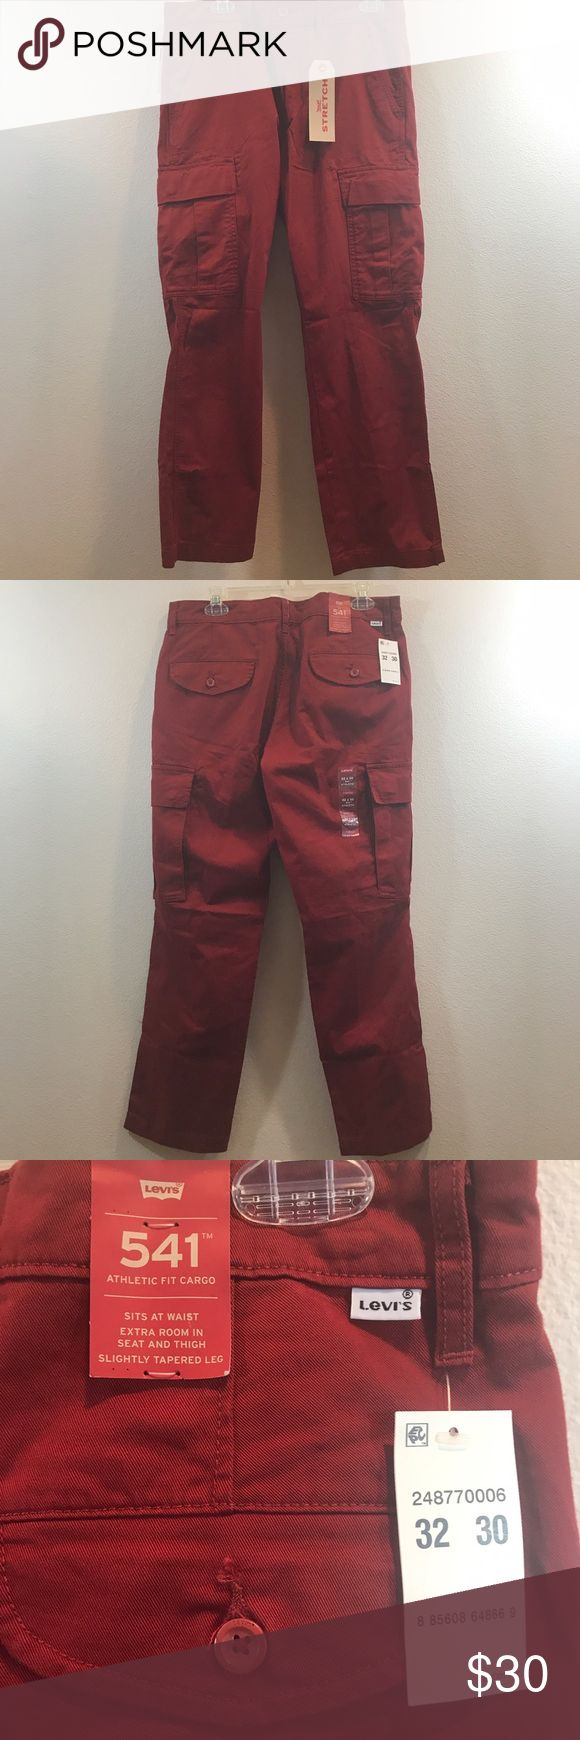 🆕 LEVIS 541 STRETCH MEN'S JEANS PANTS WAIST 32 🆕 Waist: 32 Inches Length: 38 Inches Inseam: 30 Inches  Jeans are BRAND NEW WITH TAGS!!! Price is firm and non negotiable. Levi's Jeans Relaxed